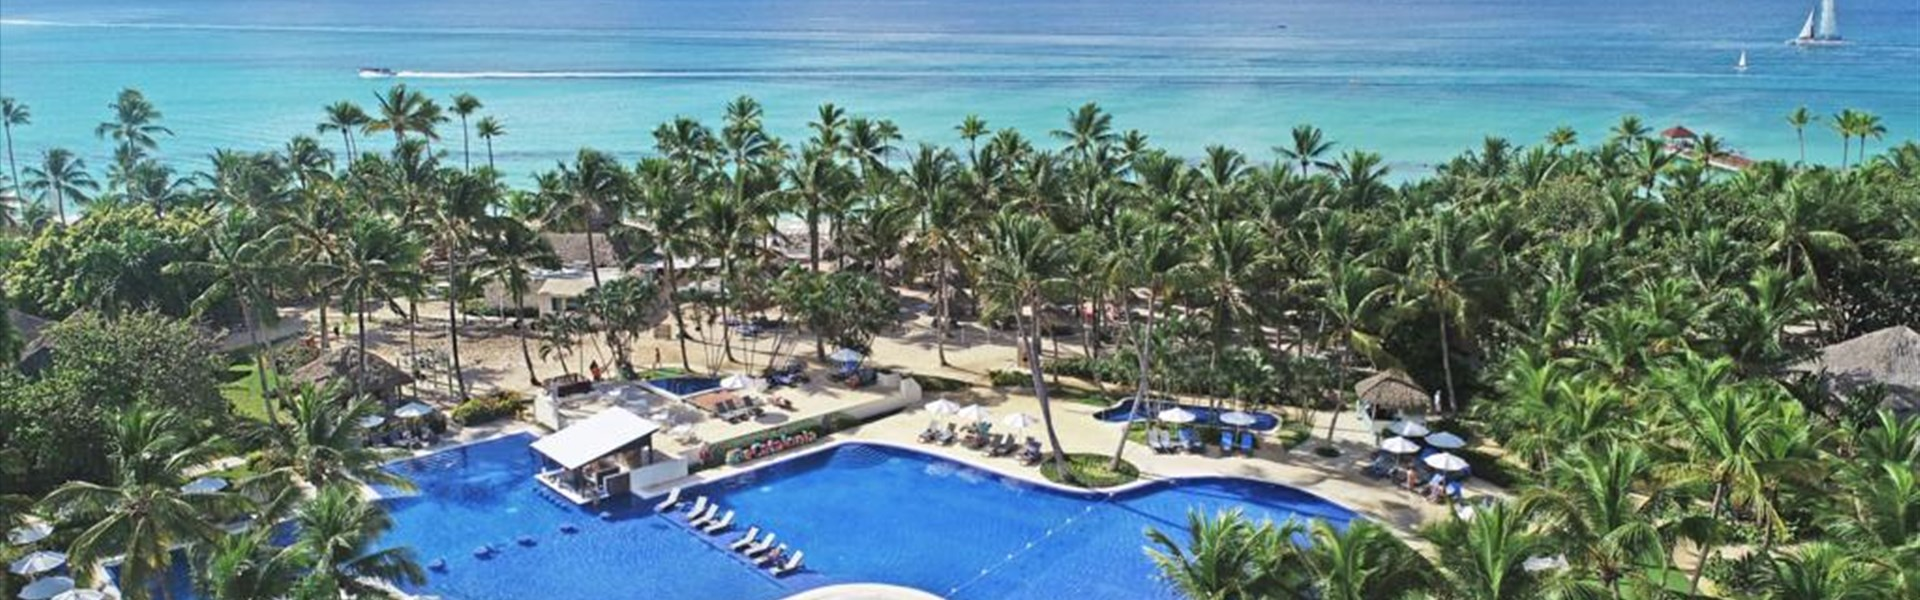 Marco Polo - Catalonia Gran Dominicus -